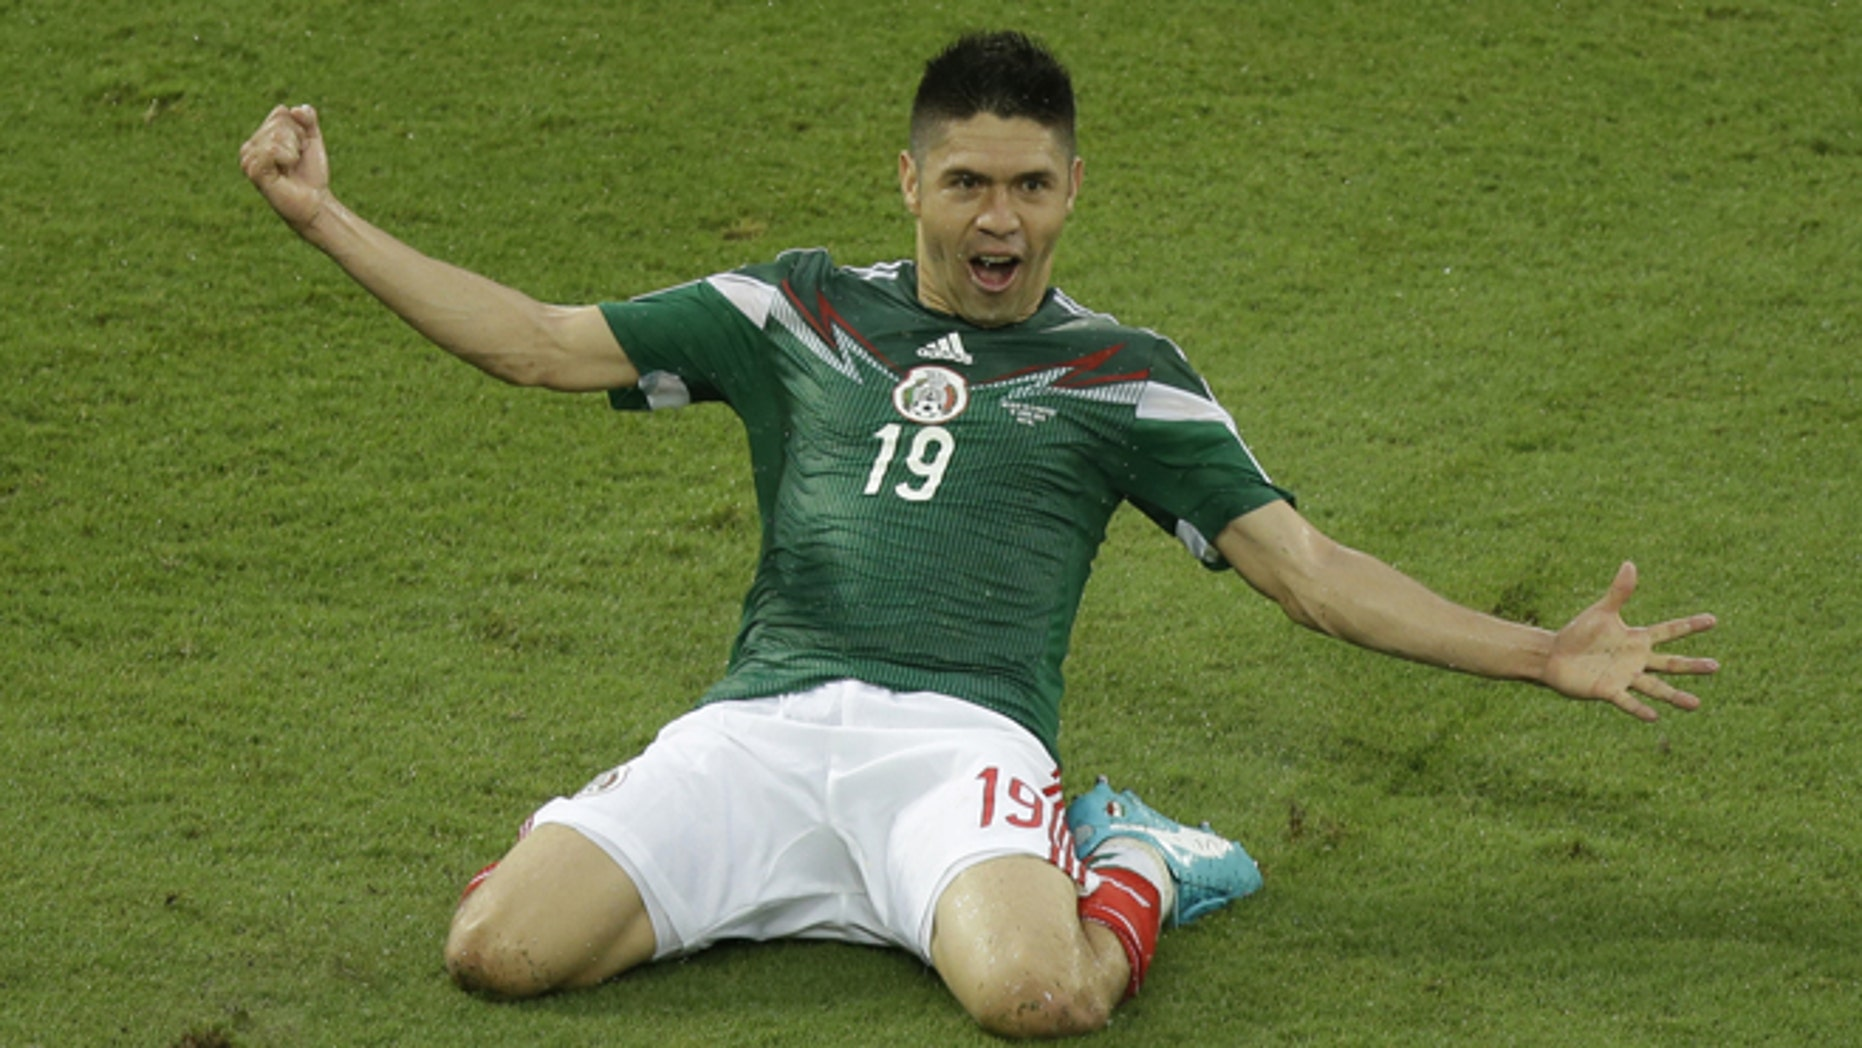 Mexico's Oribe Peralta celebrates after scoring during the group A World Cup soccer match between Mexico and Cameroon in the Arena das Dunas in Natal, Brazil, Friday, June 13, 2014.  (AP Photo/Hassan Ammar)